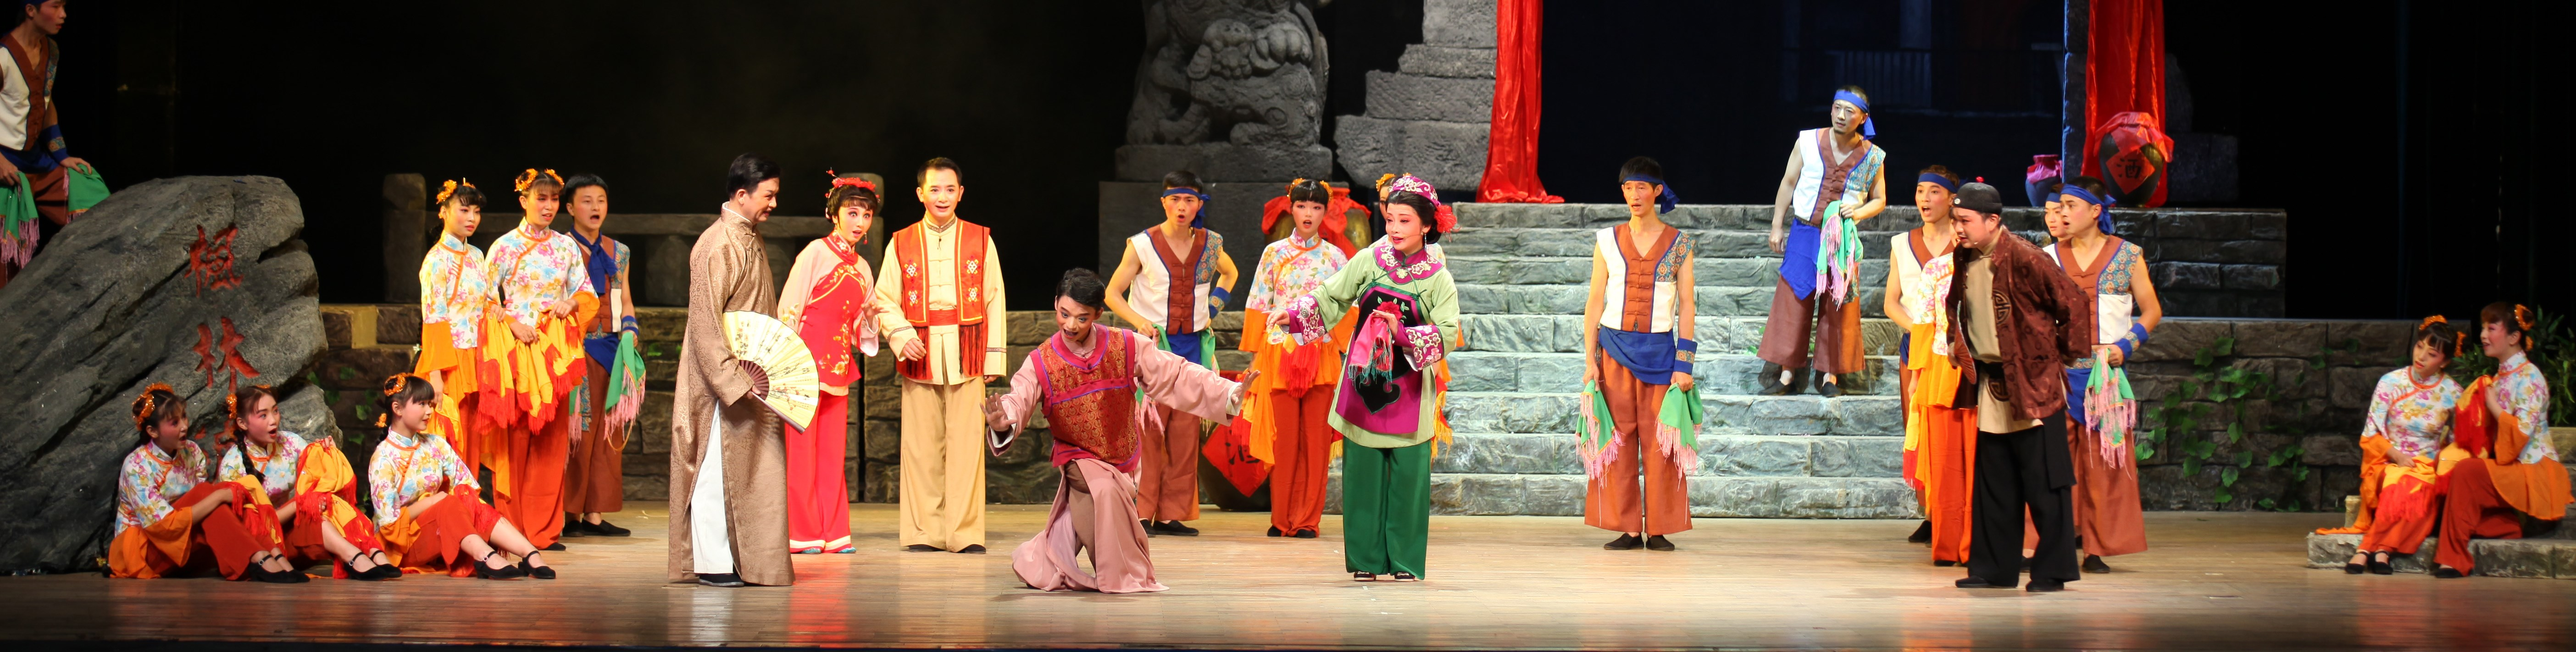 "Huadeng Opera play ""Maple Forest Wharf in the Moonlight"" will be presented at the upcoming Shanghai International Arts Festival."